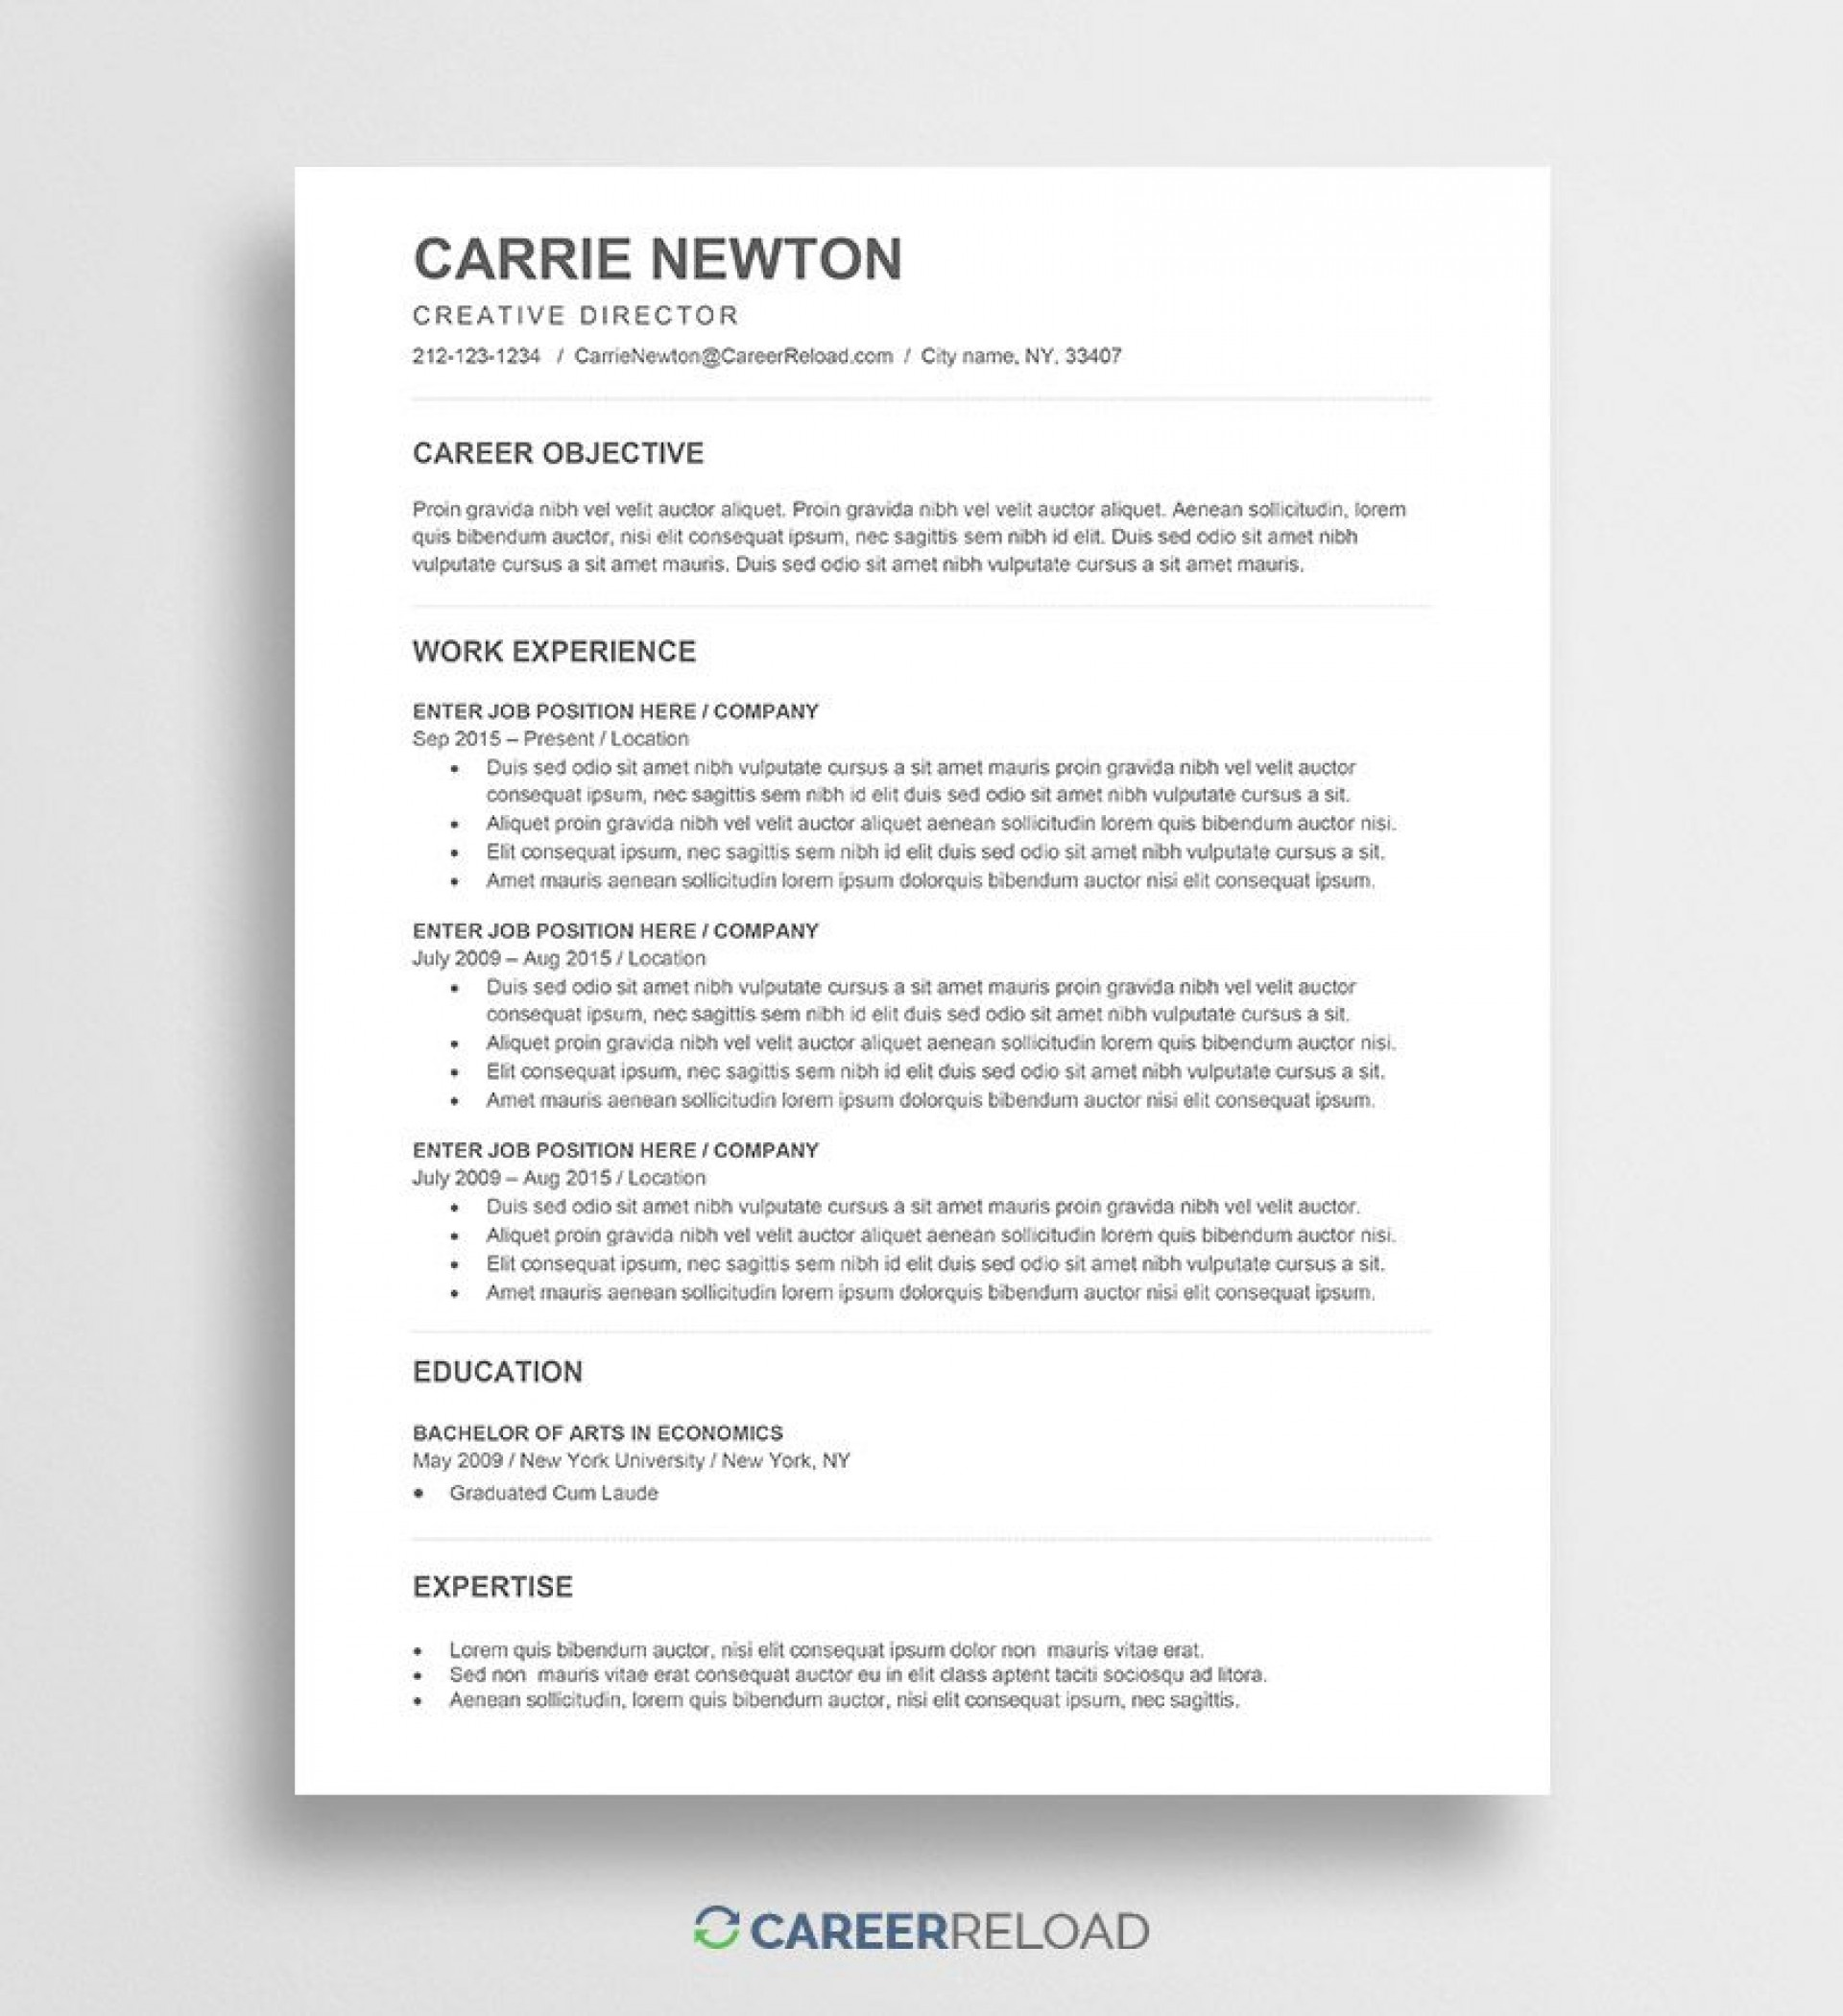 001 Stunning Word Template For Resume Highest Clarity  Resumes M Free Best Document Download1920